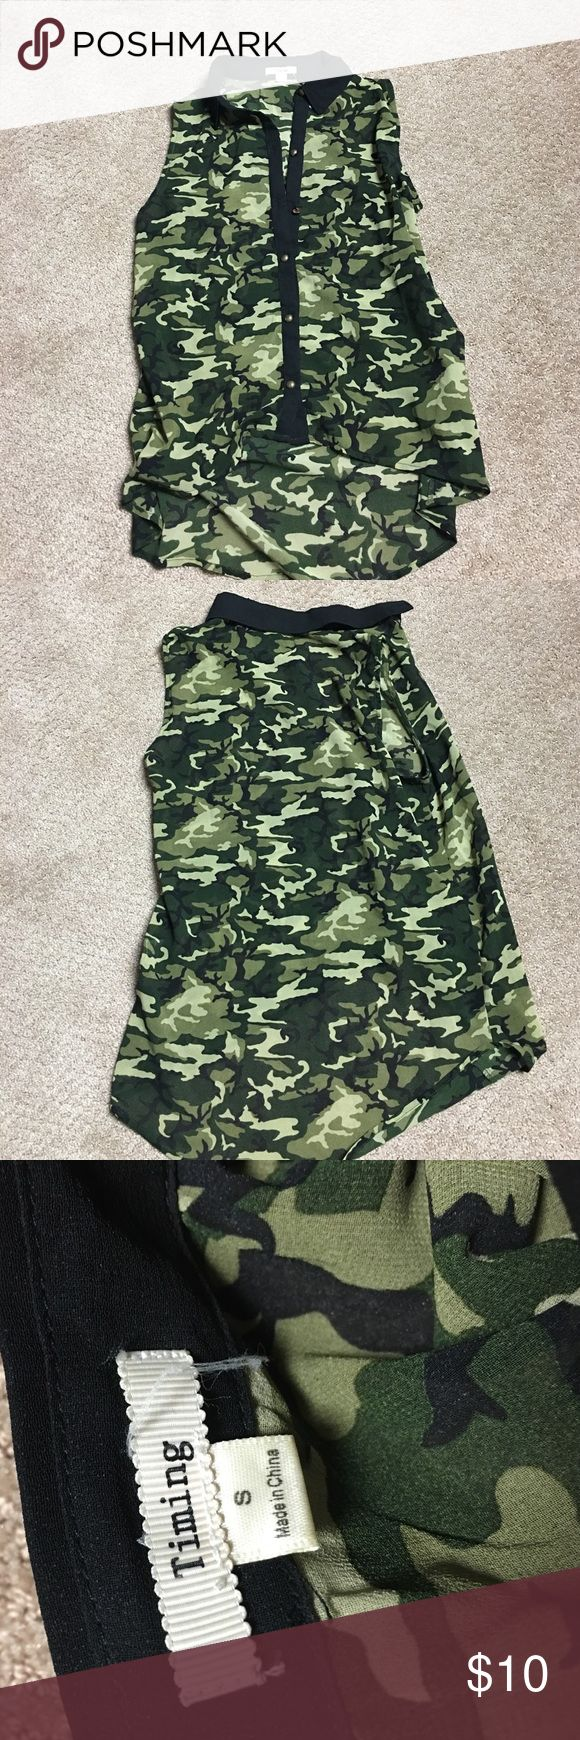 Camo top Button down collared camo blouse, never been worn. Light material, super flowy. Longer in the back. Cute with leggings. Sleeveless. I accept offers Camo Tops Button Down Shirts